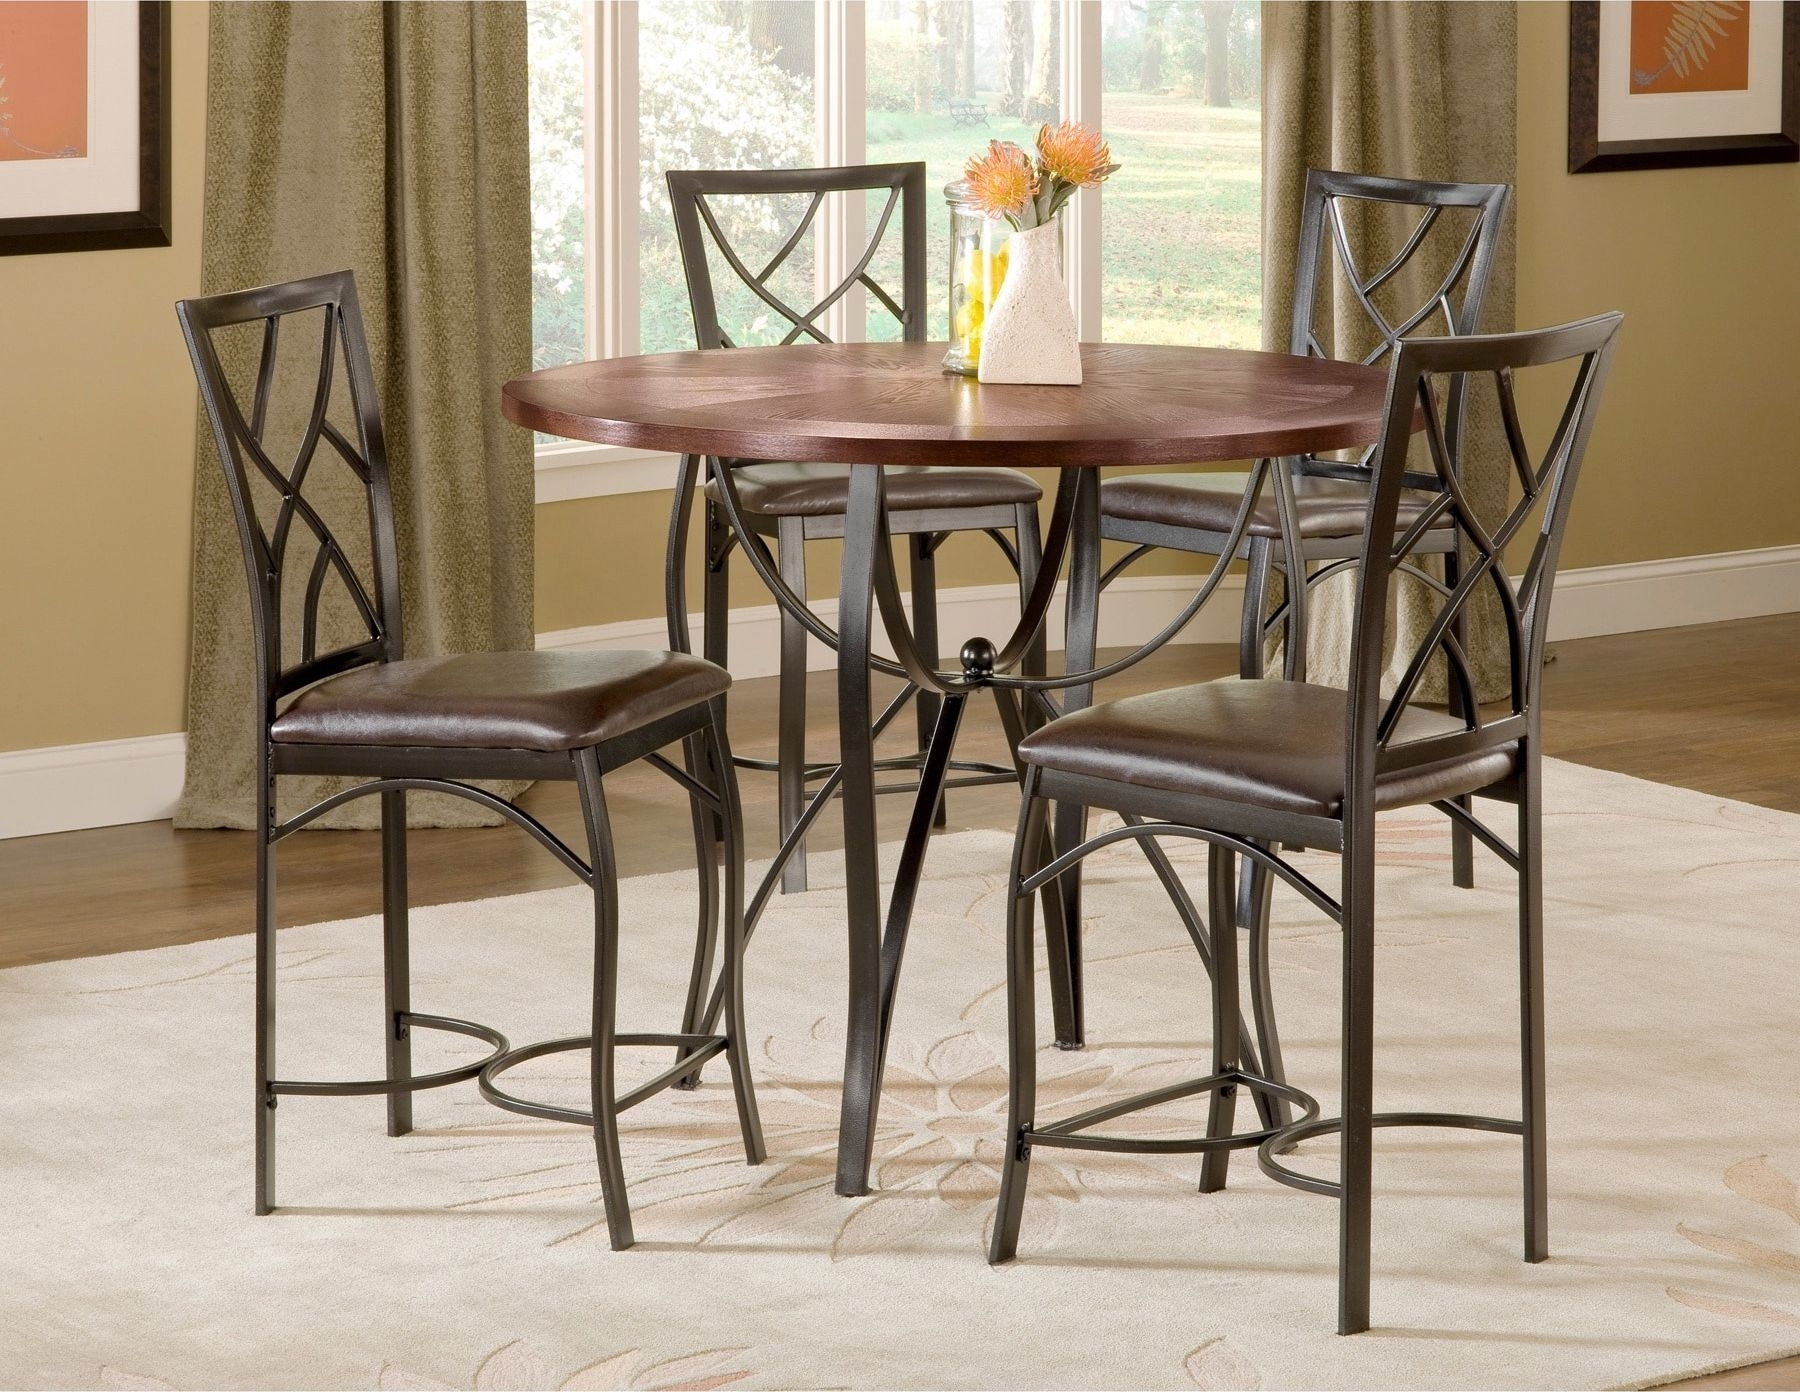 Sanford Merlot 5 Piece Counter Height Table And 4 Chairs Black Metal In Most Current Jaxon 5 Piece Extension Counter Sets With Wood Stools (Image 15 of 20)